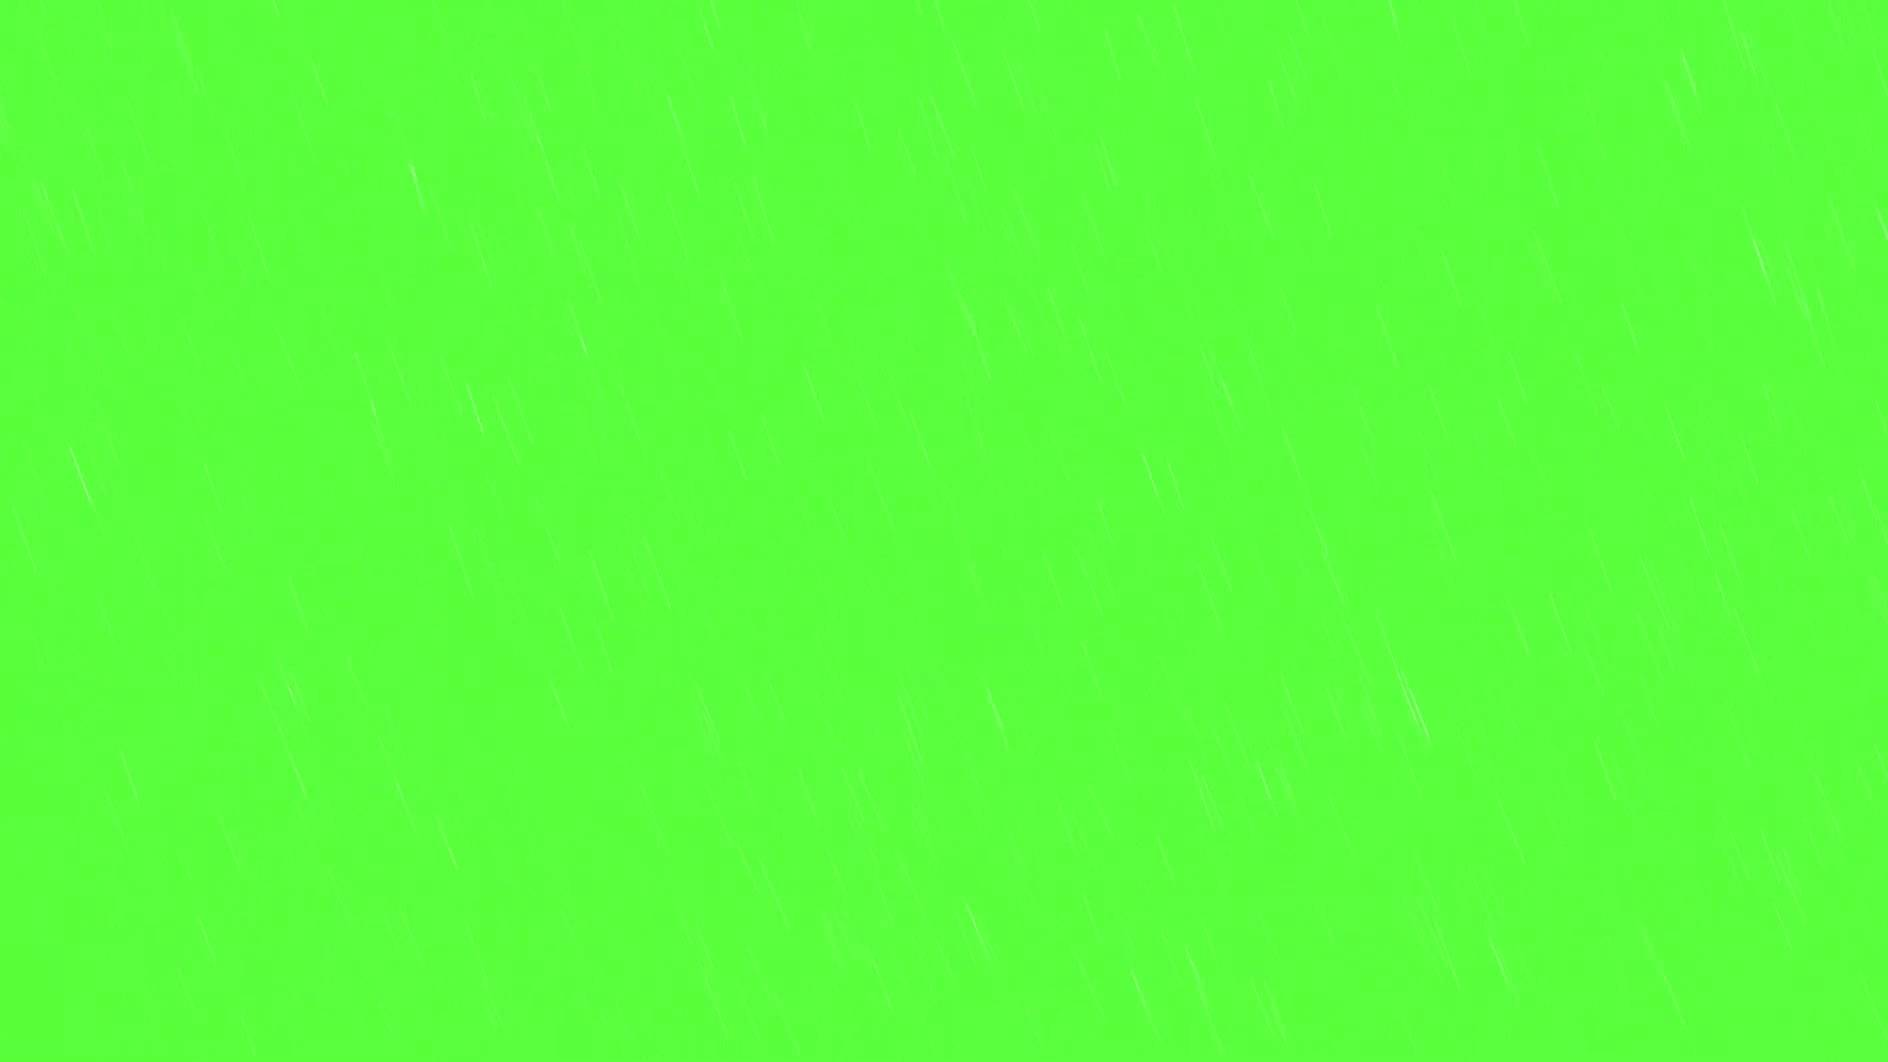 I made a green screen of the double tap animation